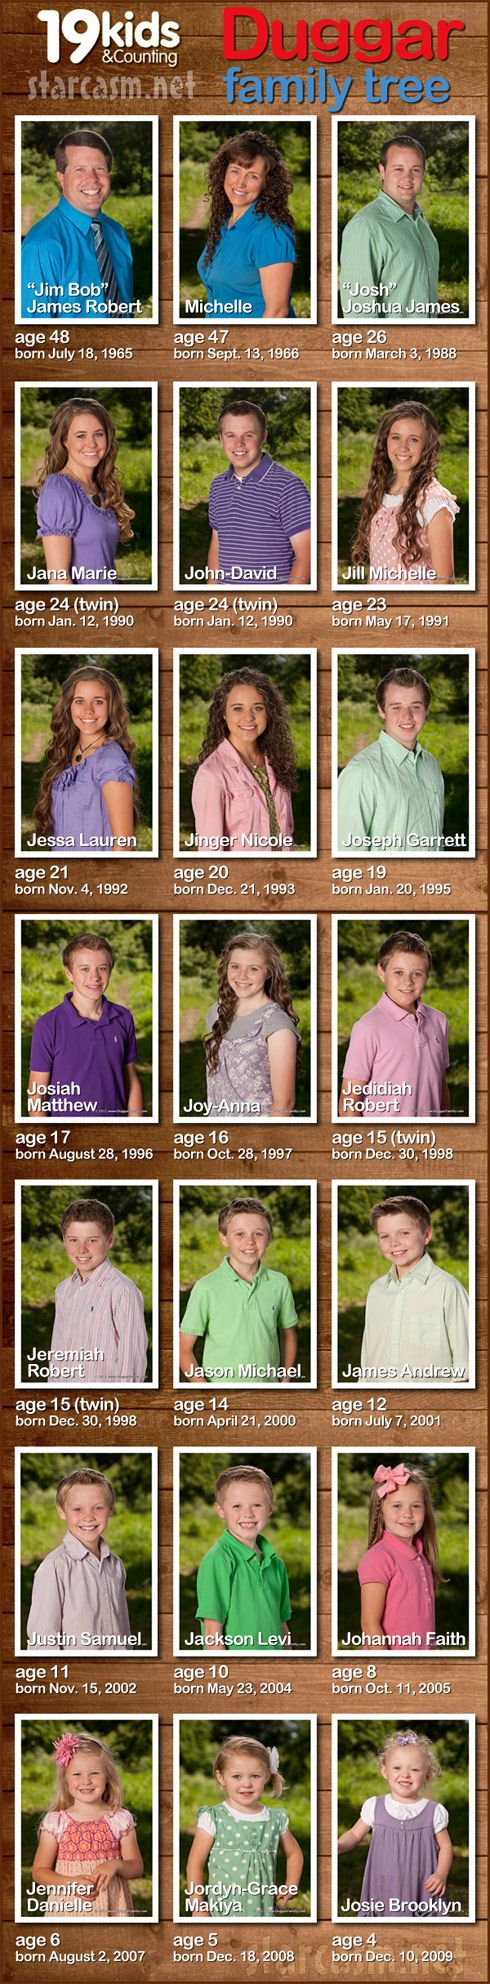 19 Kids and Counting Duggar Family Tree with birthdays and ages - I like this family :)